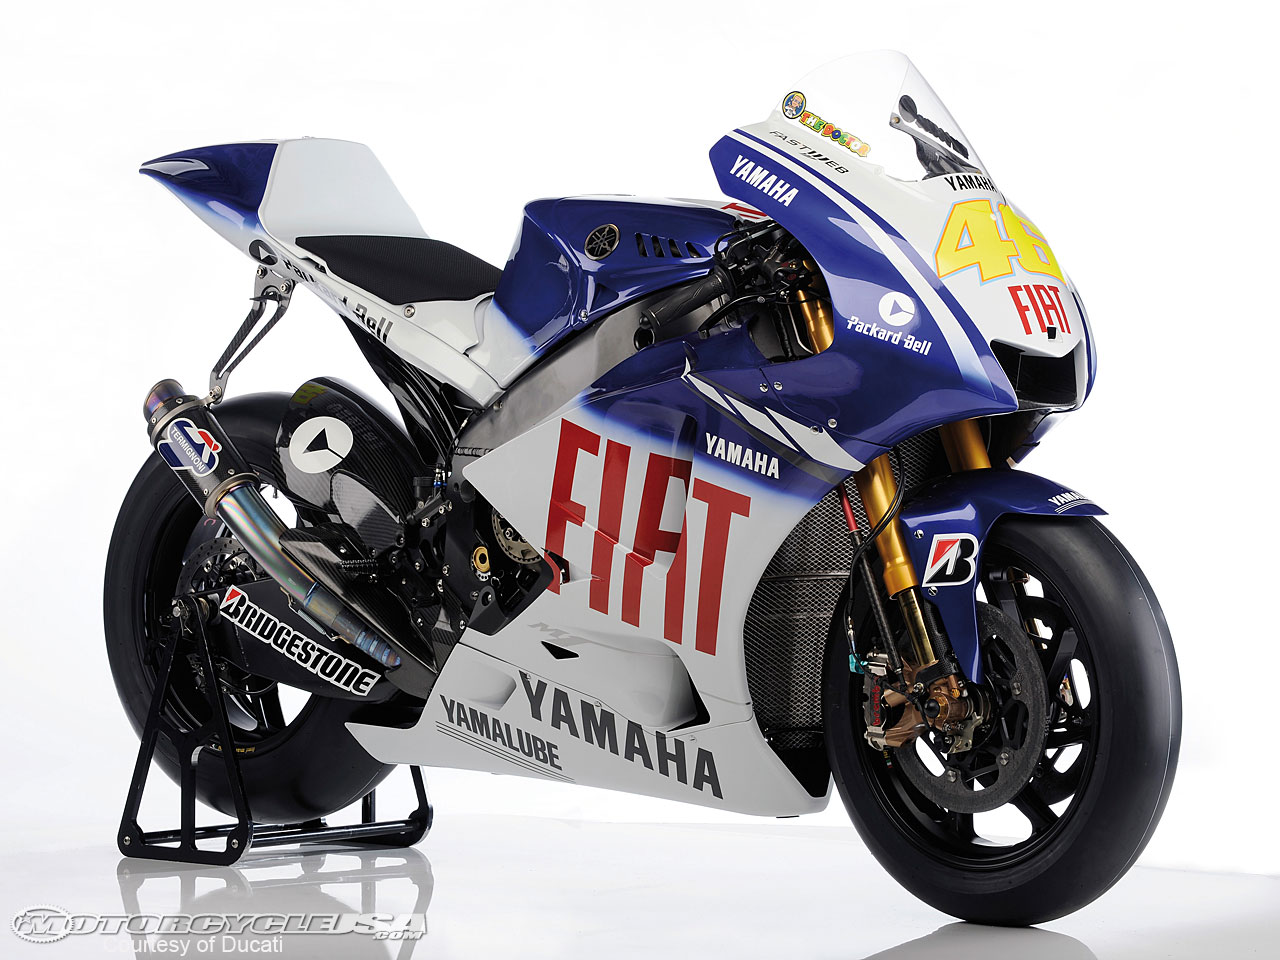 Yamaha yzf-r125 photo - 2